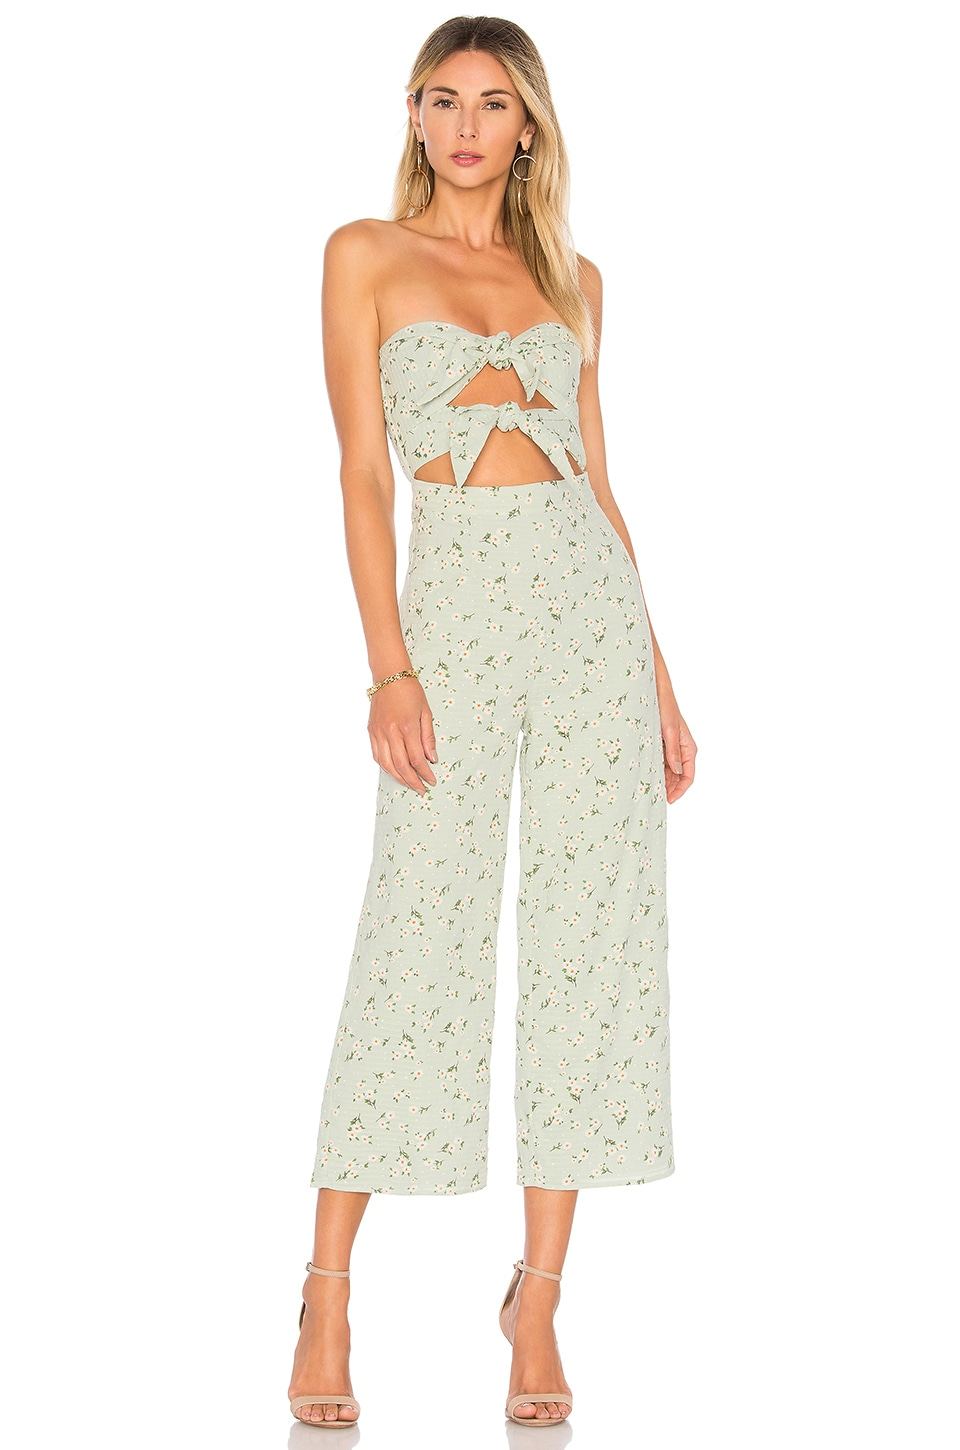 MAJORELLE Tessa Jumpsuit in Mint Green